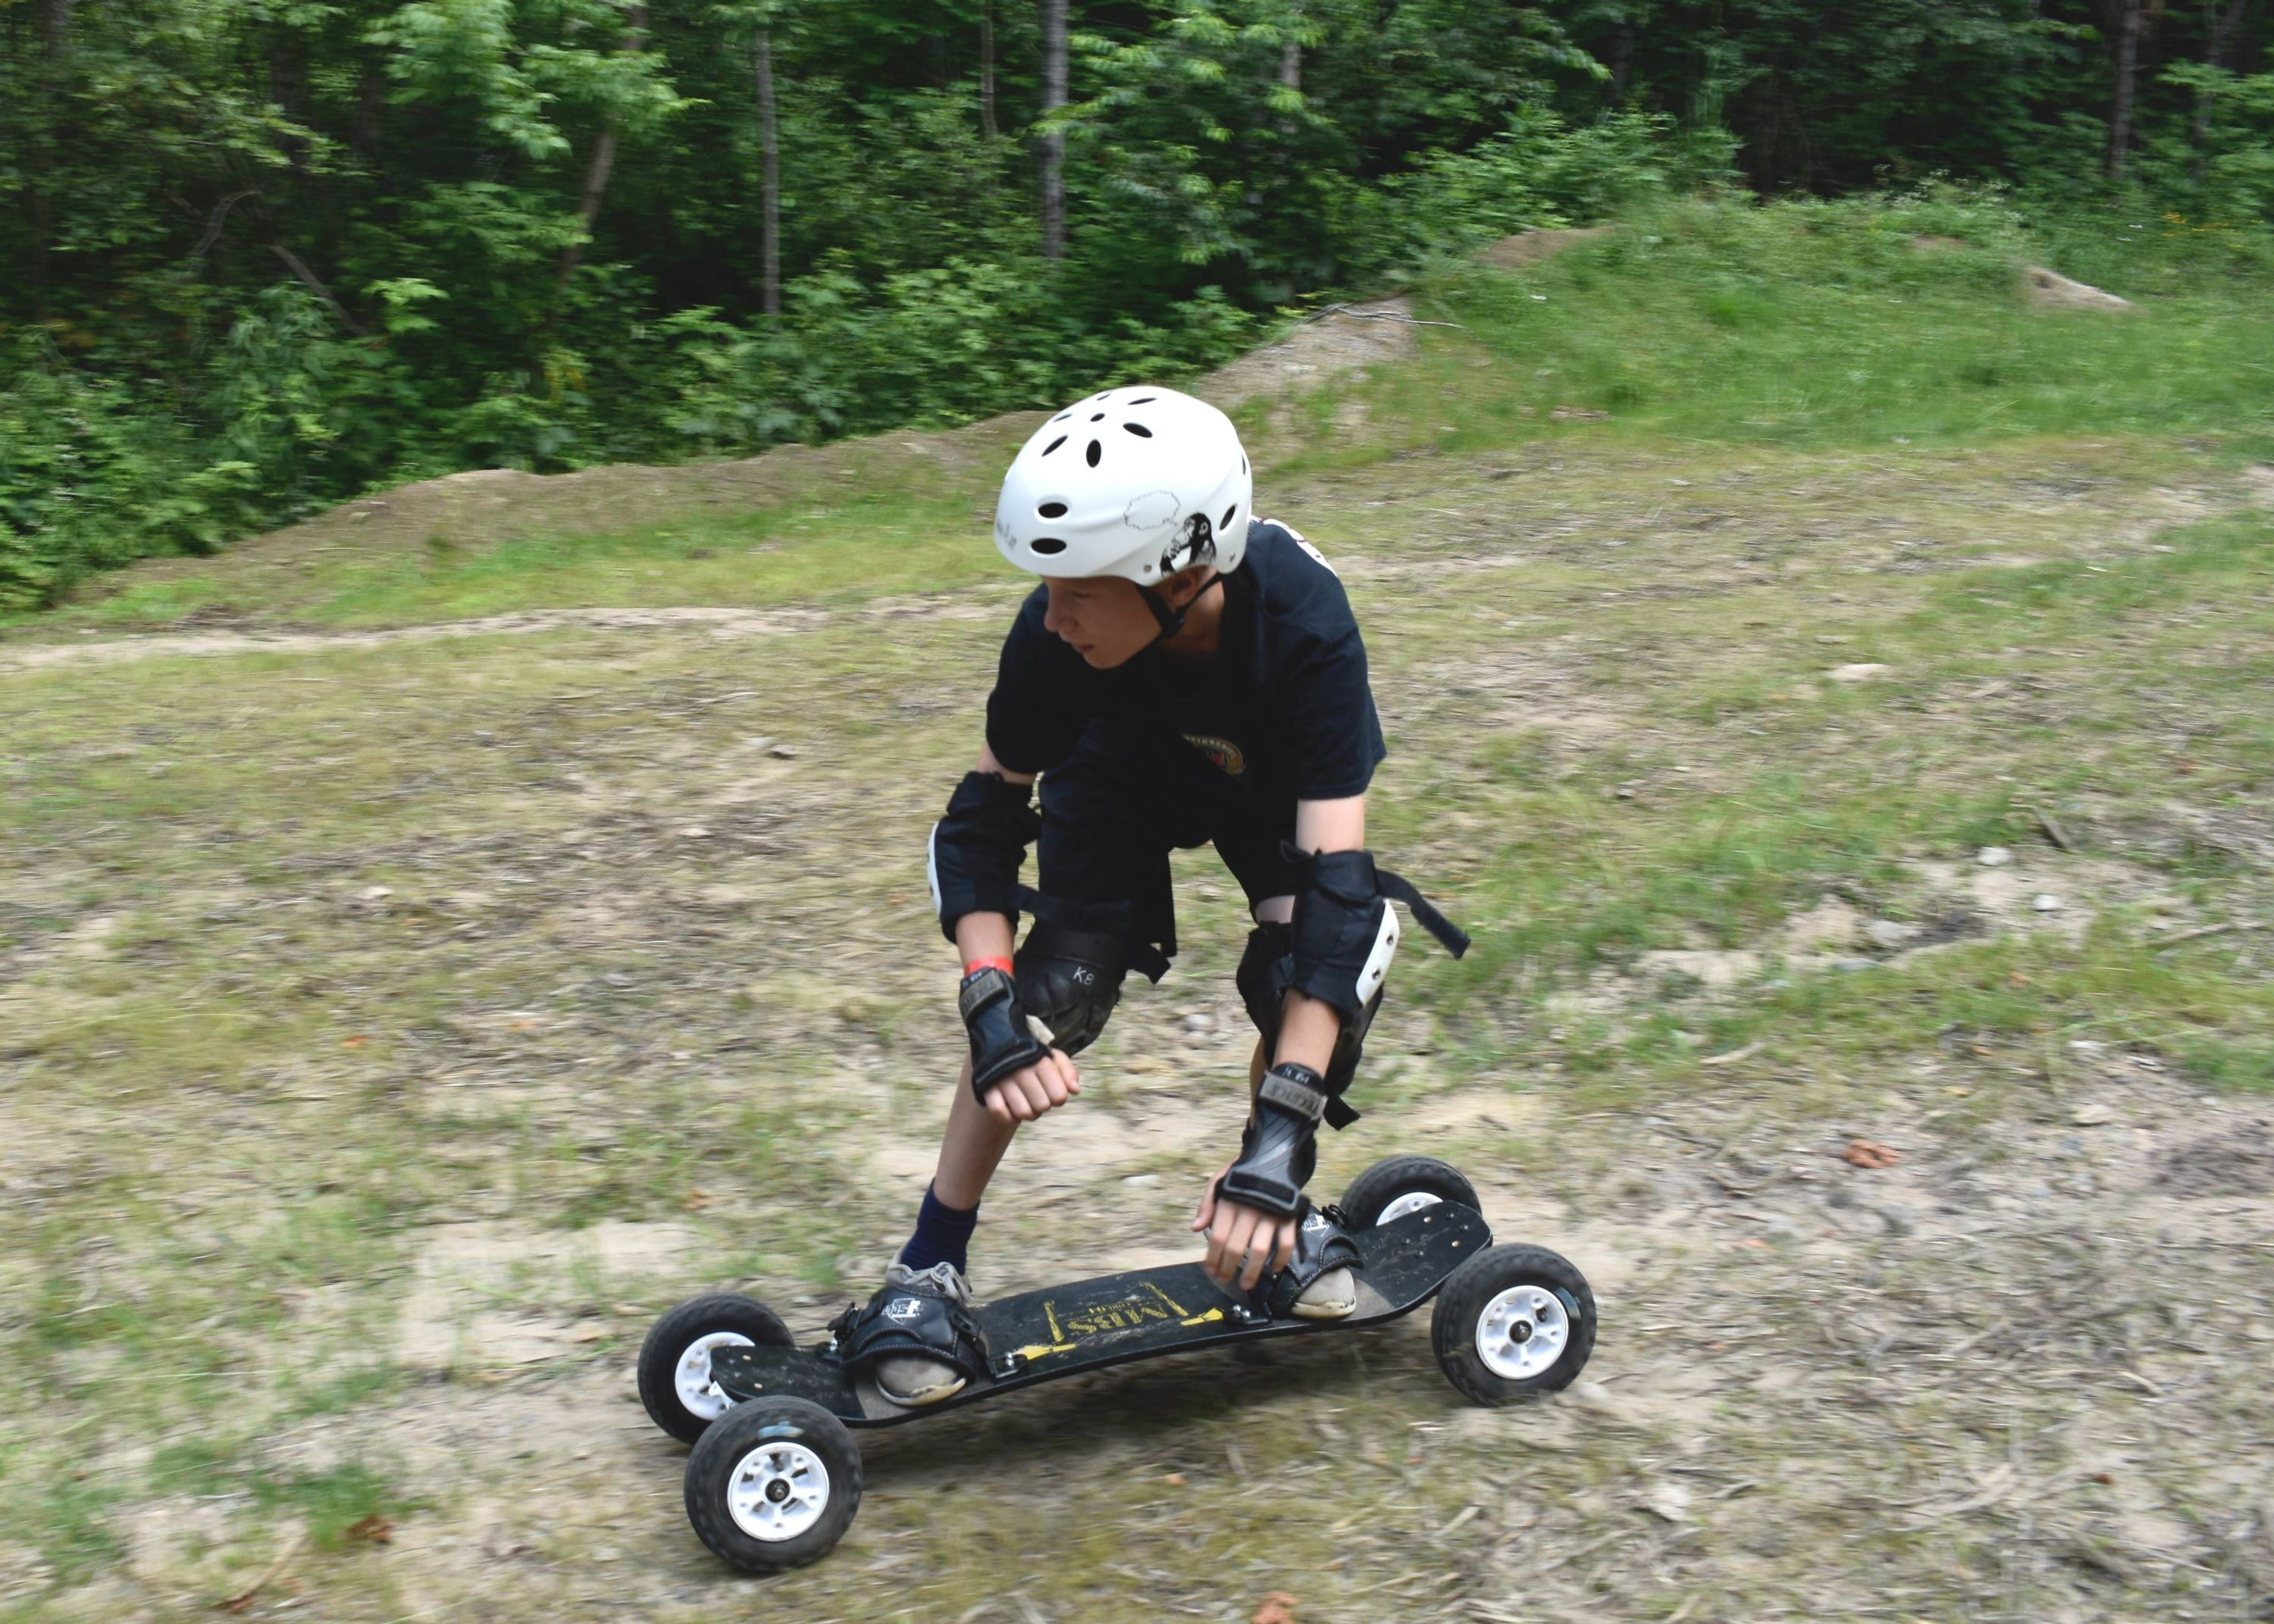 Camper mountain boarding outside at christian adventure summer camp in Haliburton, Ontario